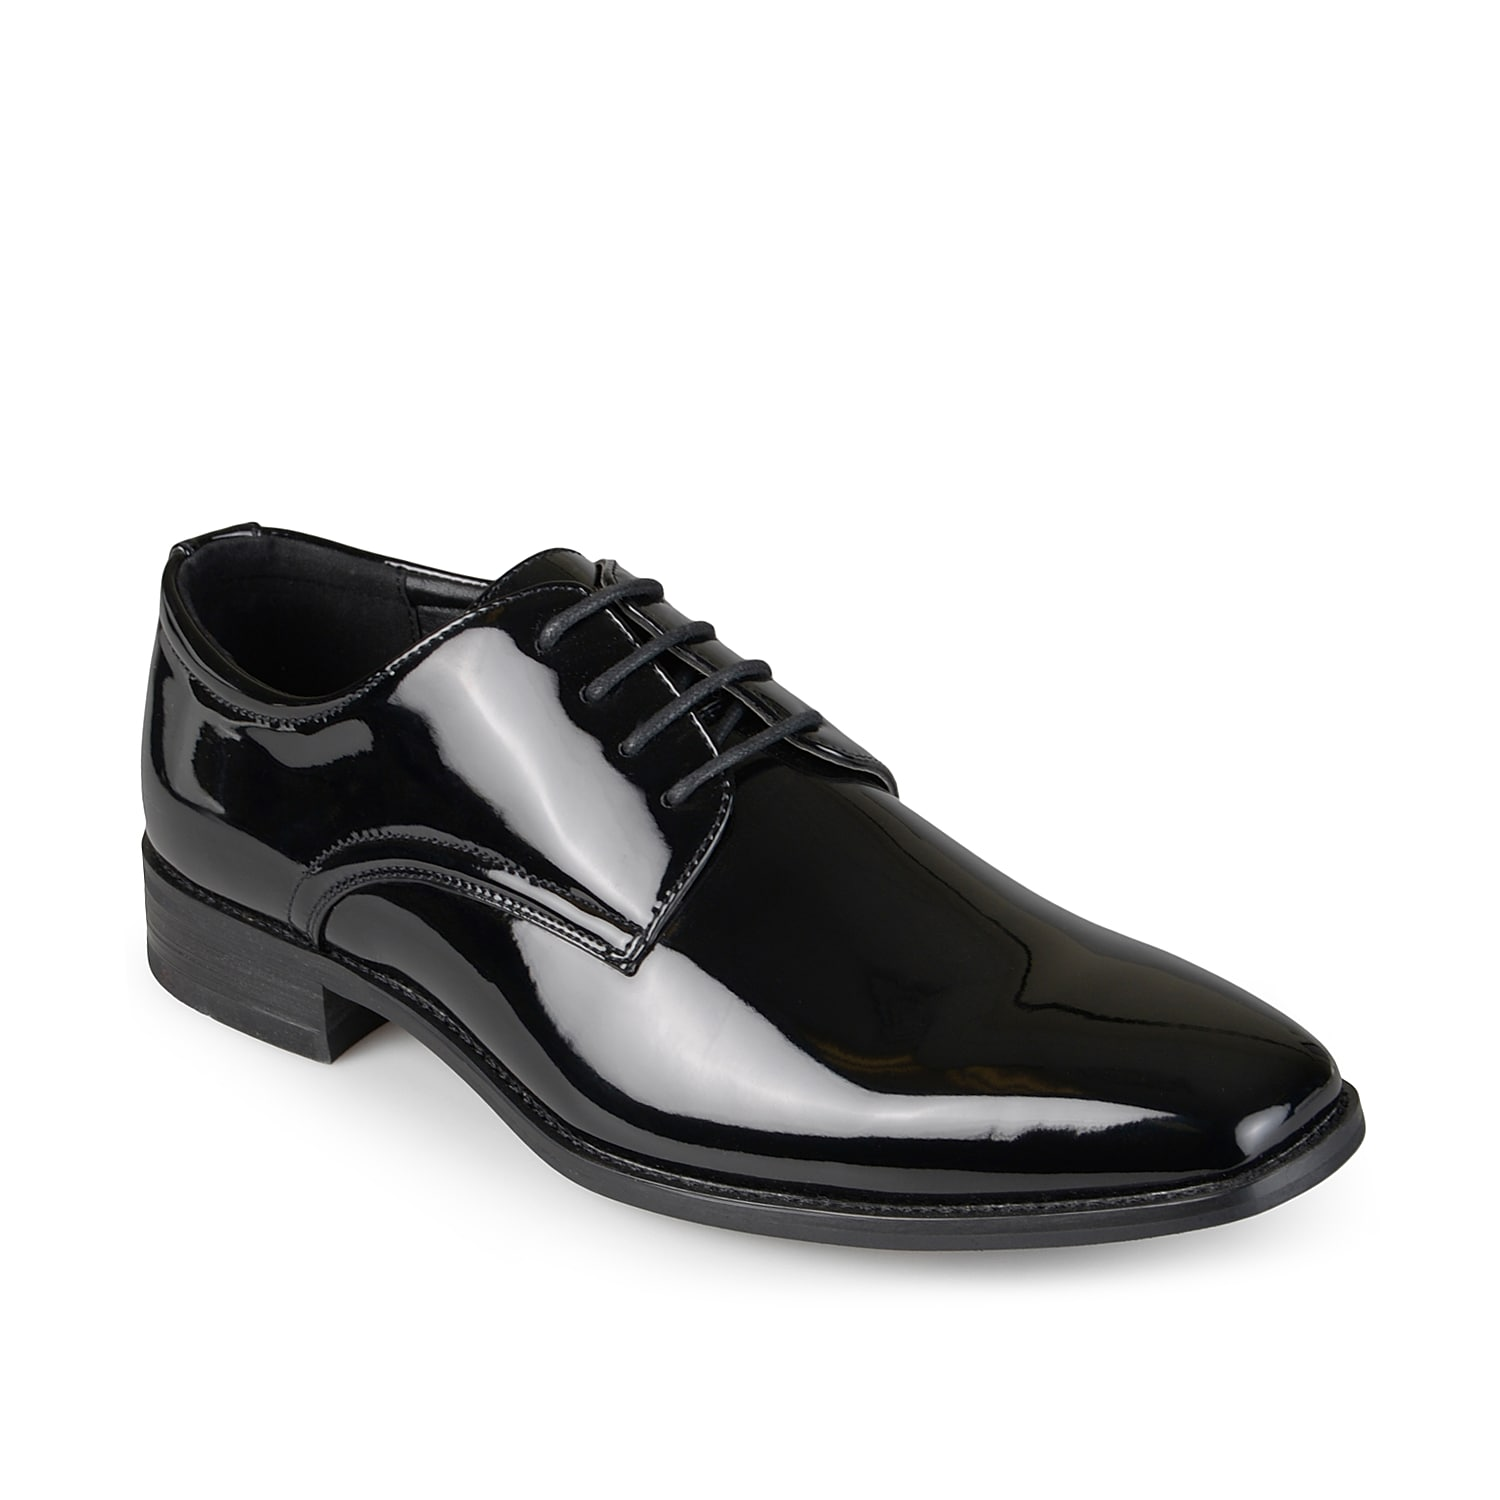 Add a touch of sheen to your suited up look with the Vance Co. Cole oxford. Defined by a glossy finish, these tuxedo shoes sport a square toe design to complete its classic silhouette.